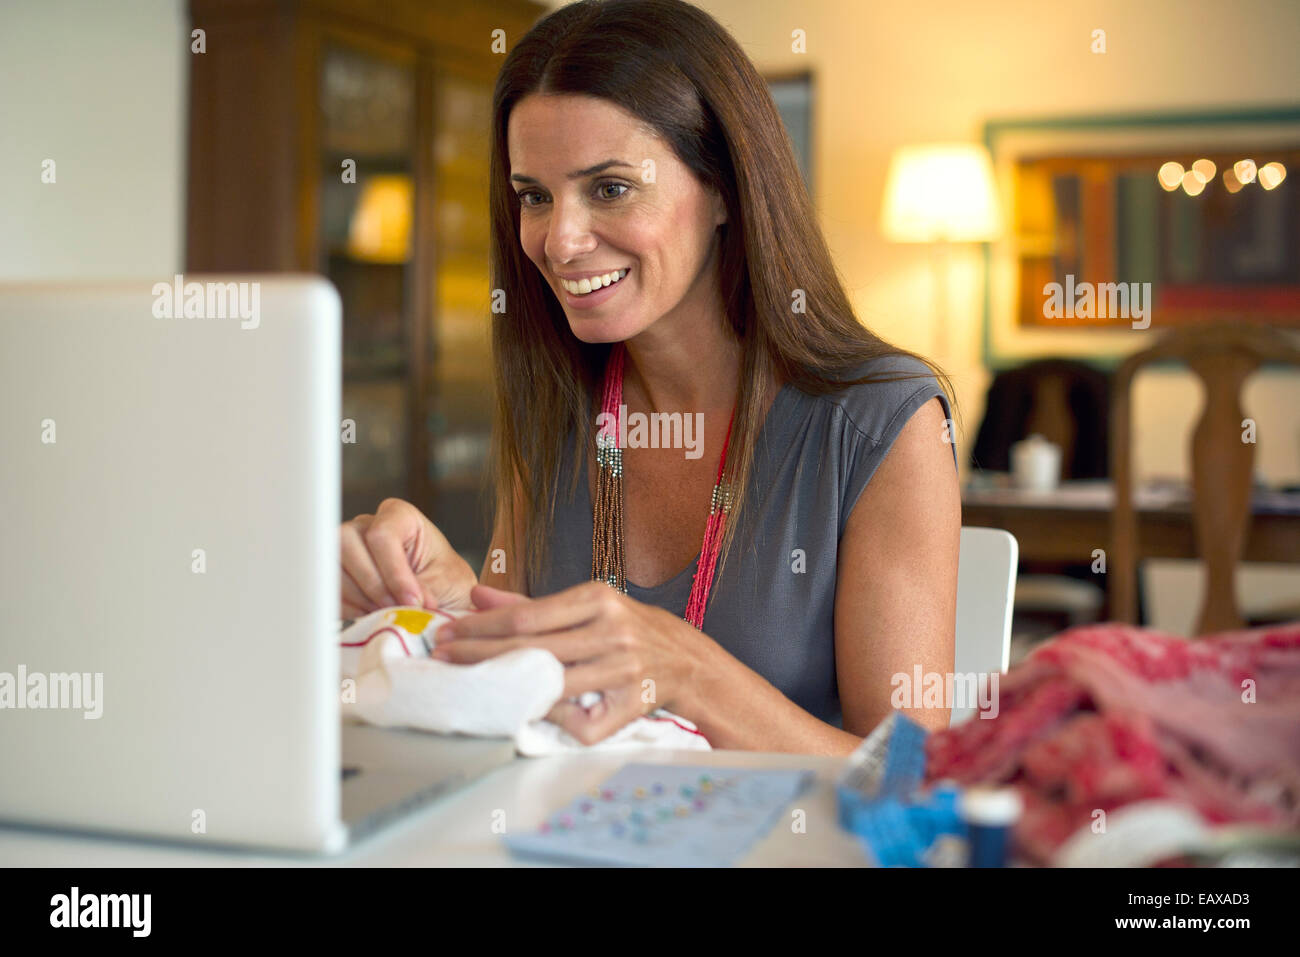 Woman looking at laptop computer while sewing - Stock Image